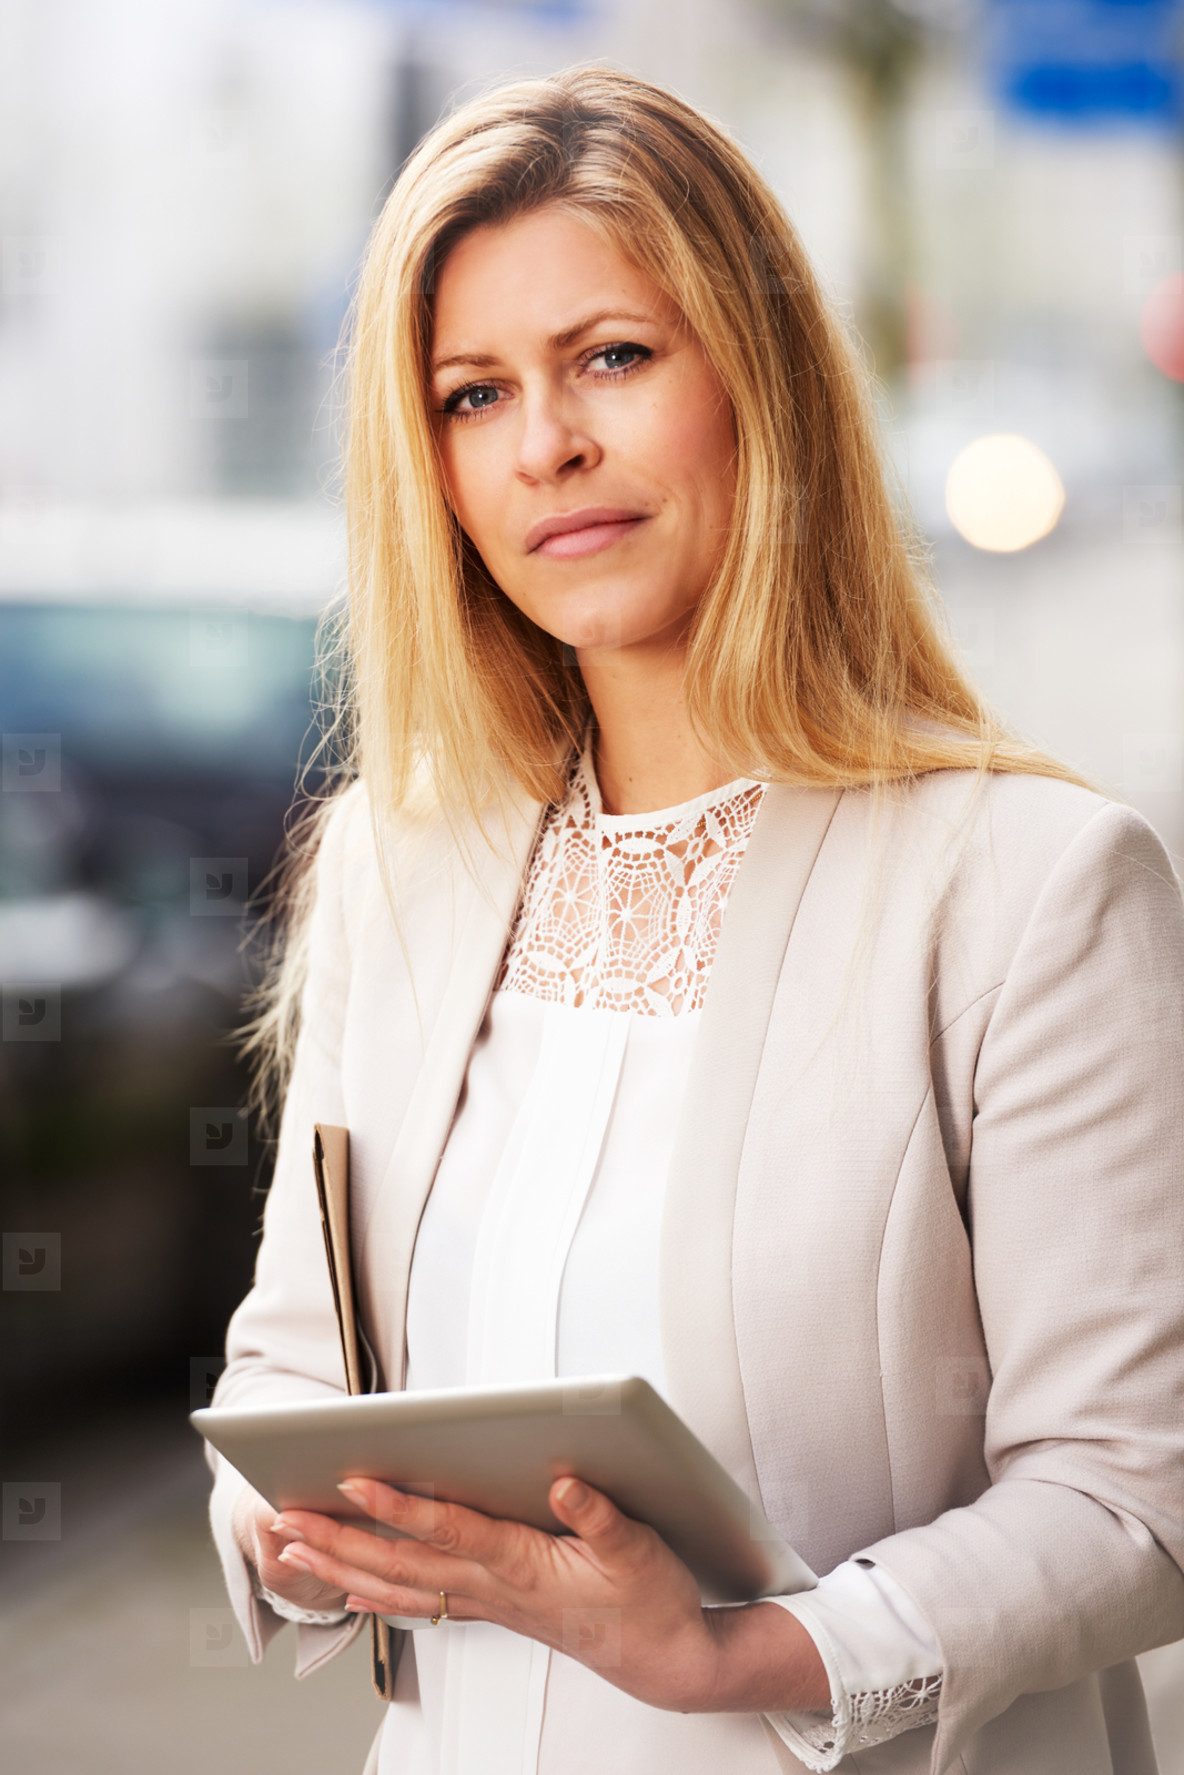 Professional woman posing on sidewalk with tablet